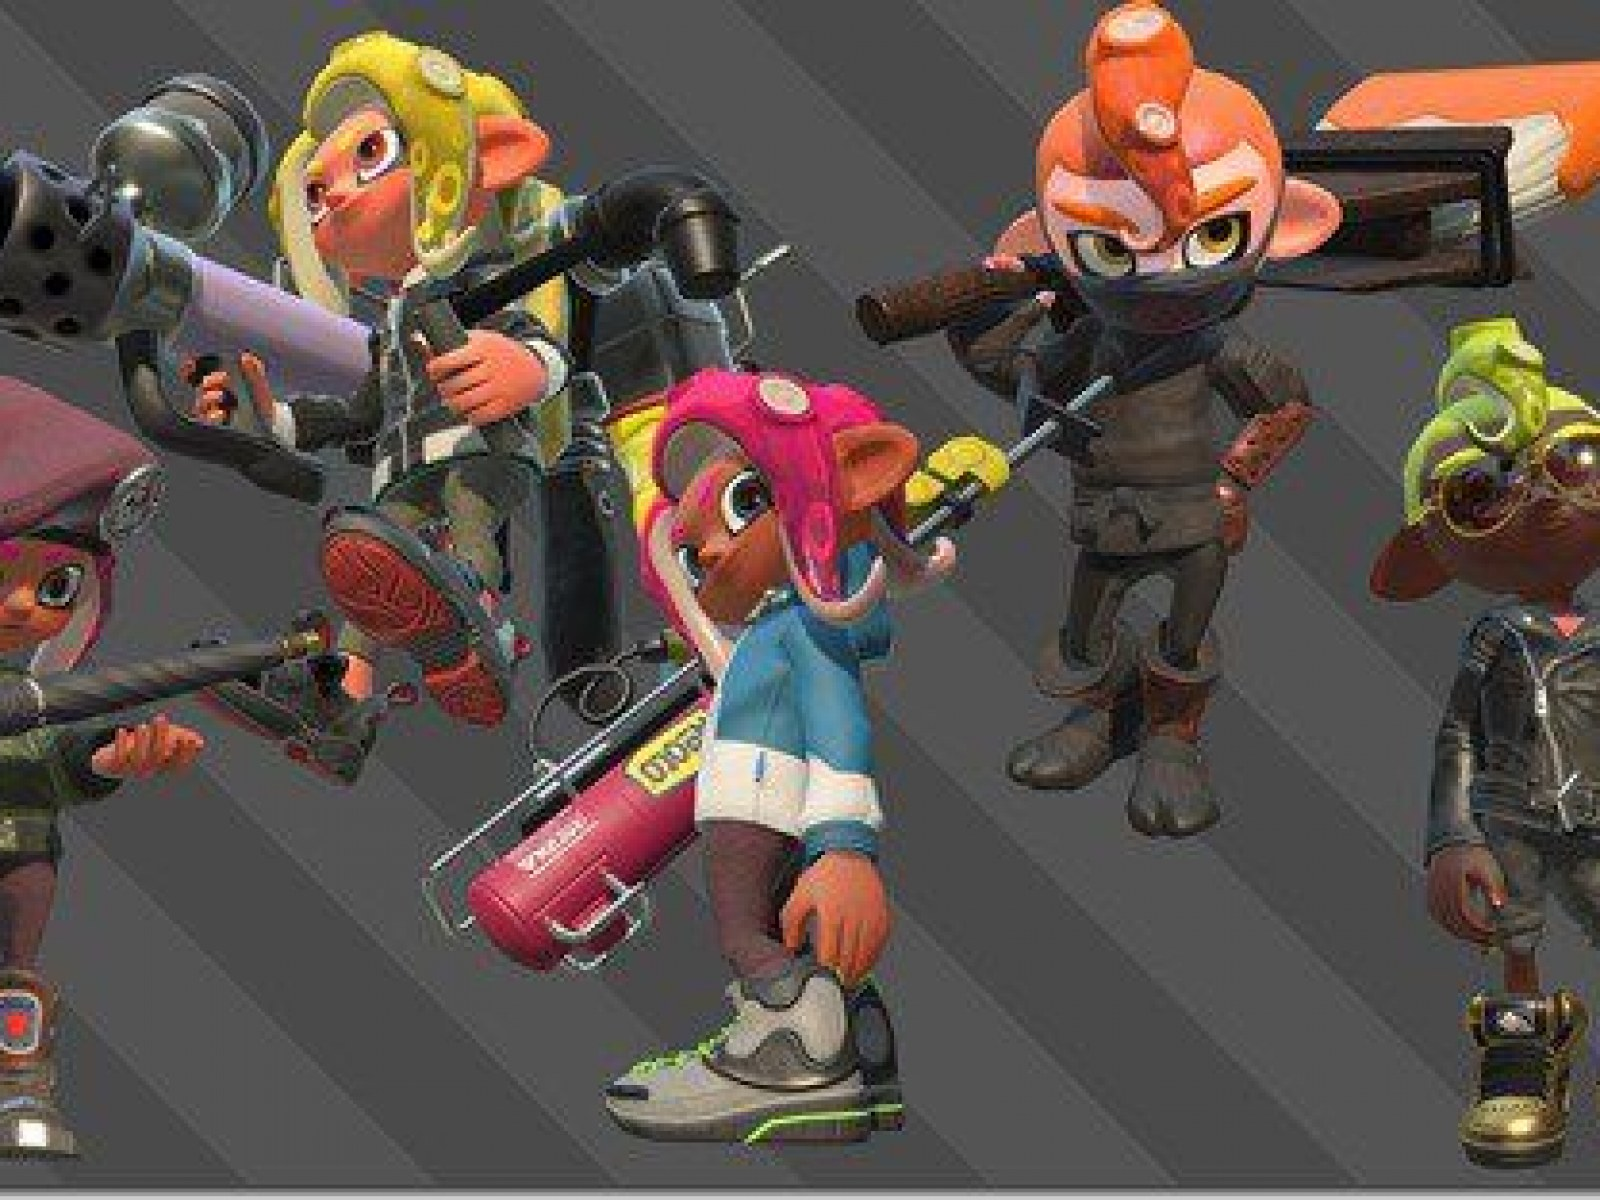 Splatoon 2' Octo Expansion Story Details Revealed on Twitter